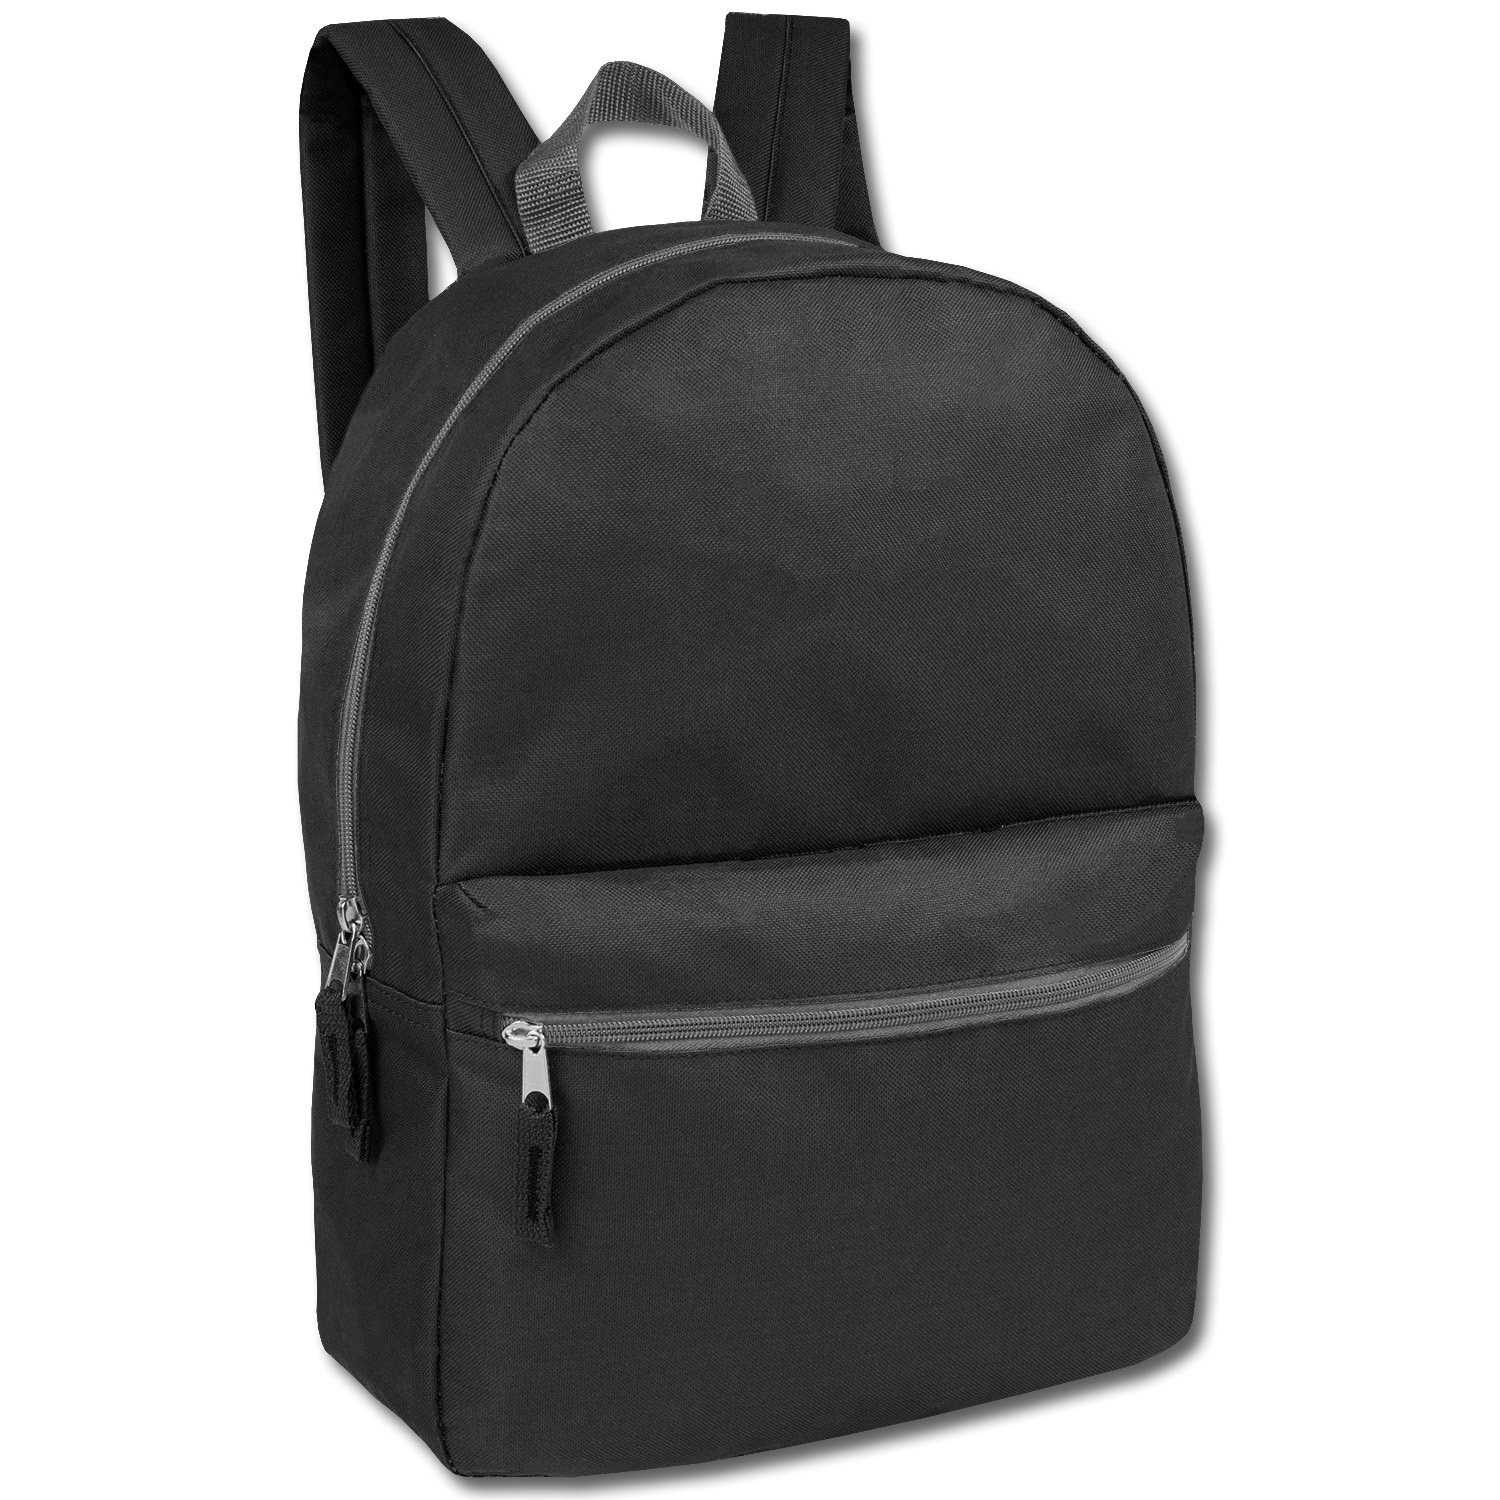 Trailmaker 17 Inch Classic Backpack - Black Only Case Pack 24